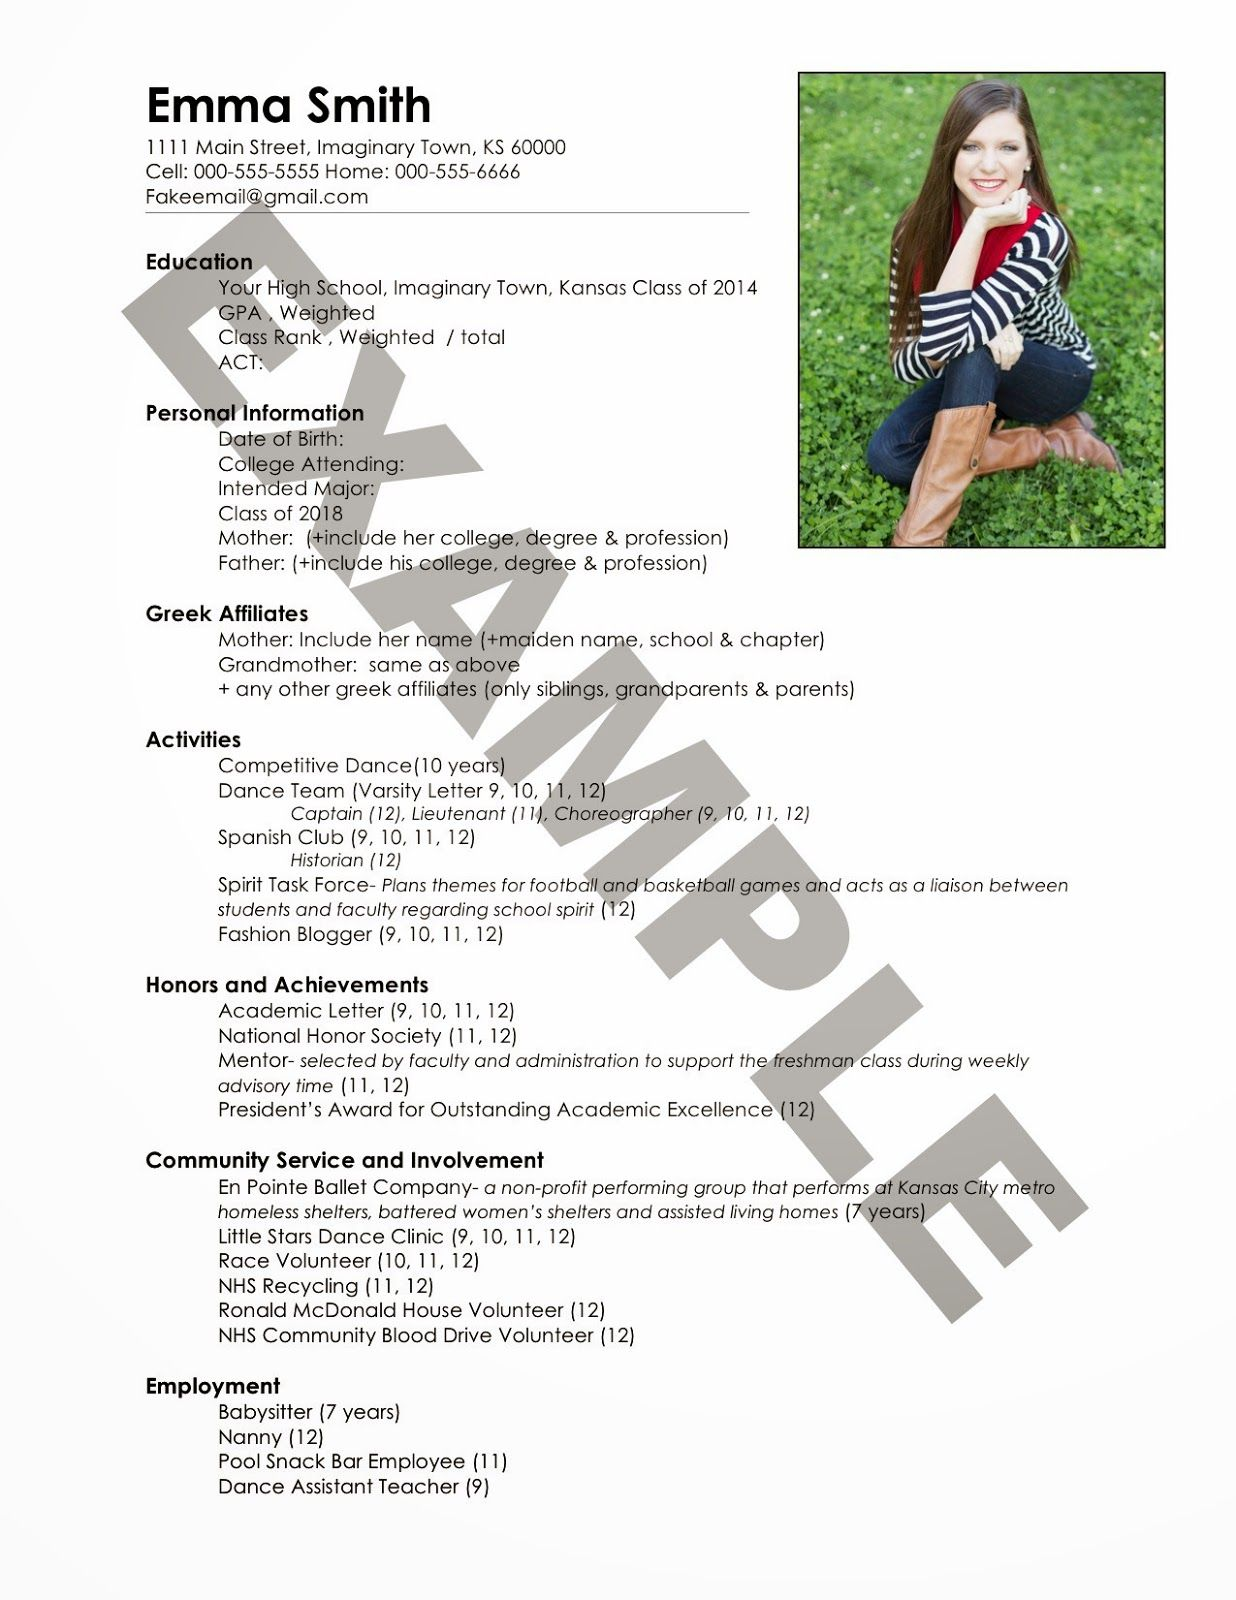 how to write a resume for sorority recruitment - Sorority Resume Template